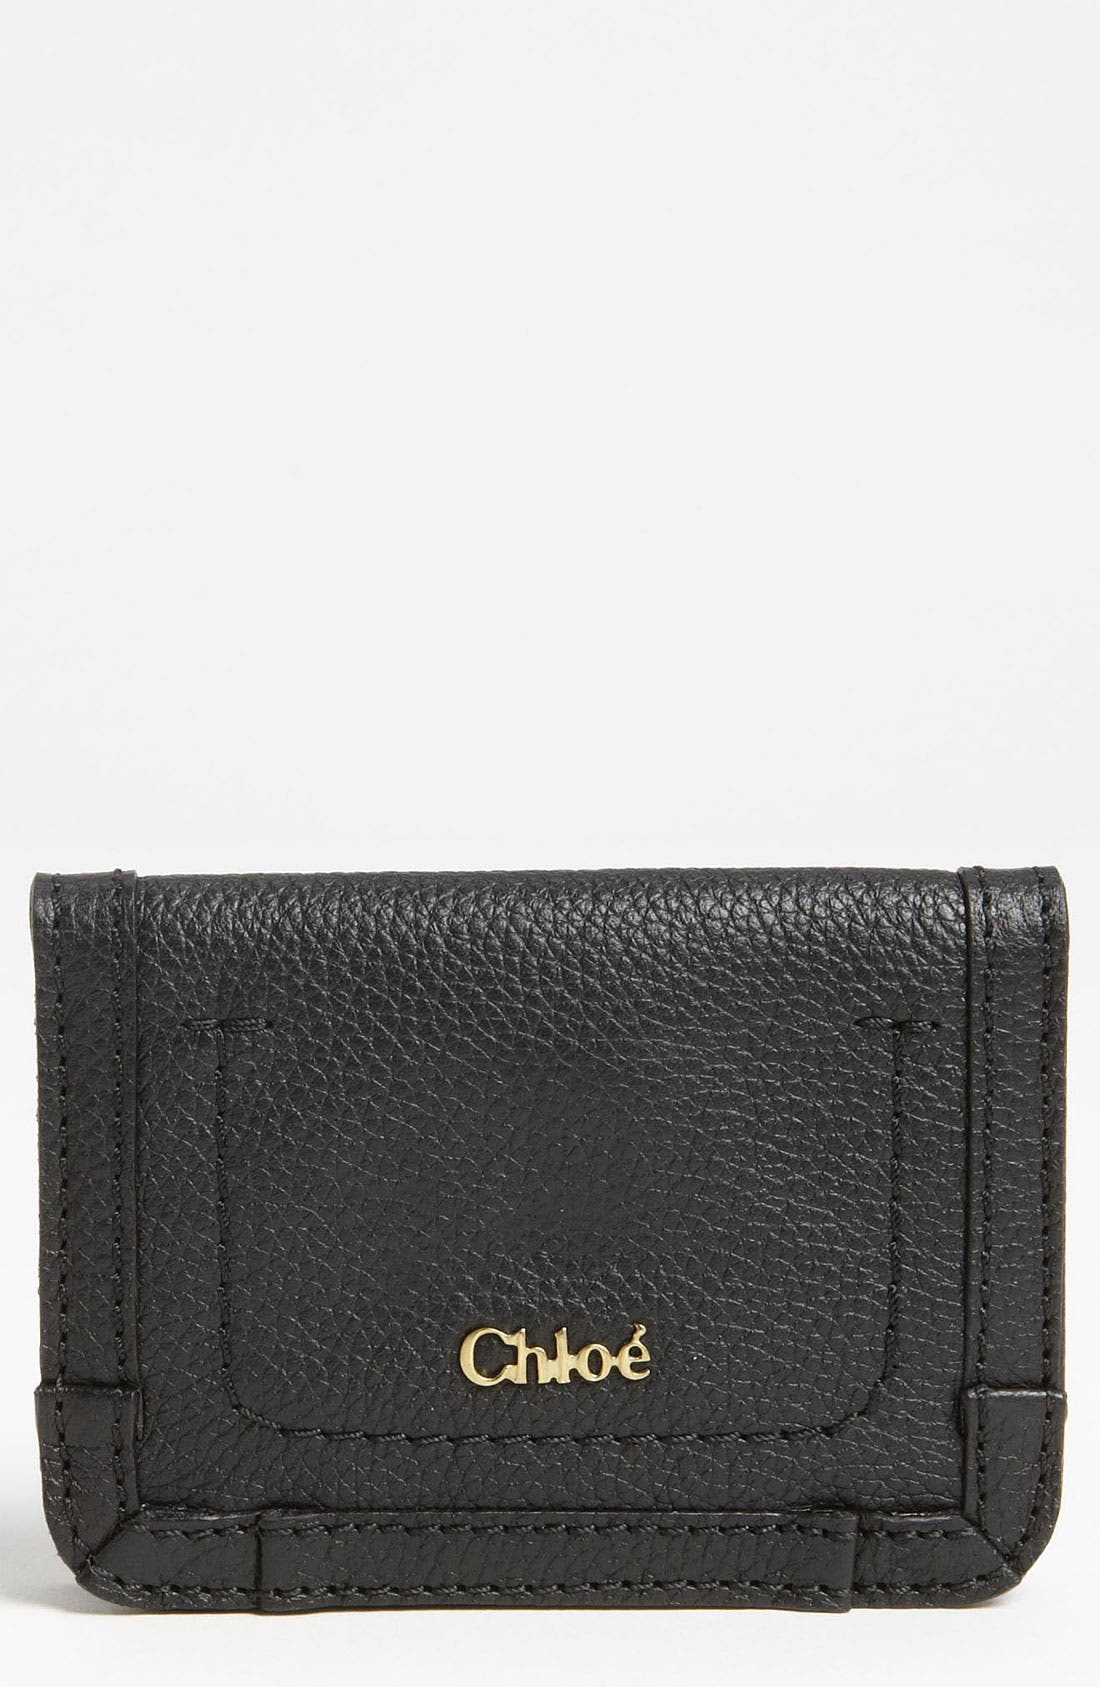 Main Image - Chloé 'Paraty' Leather Card Holder